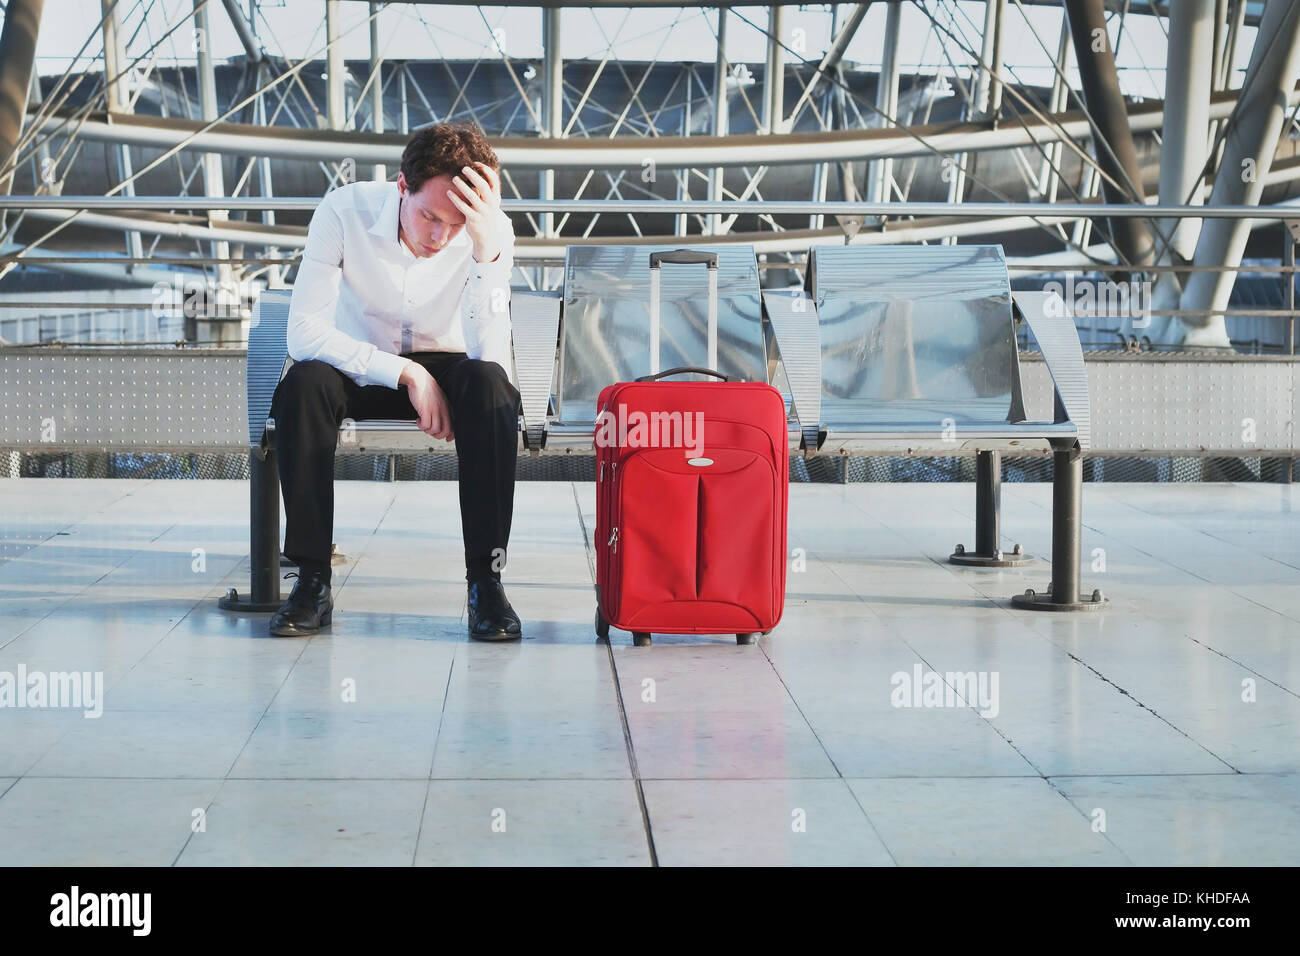 flight delay or problem in the airport, tired desperate passenger waiting in the terminal with suitcase - Stock Image